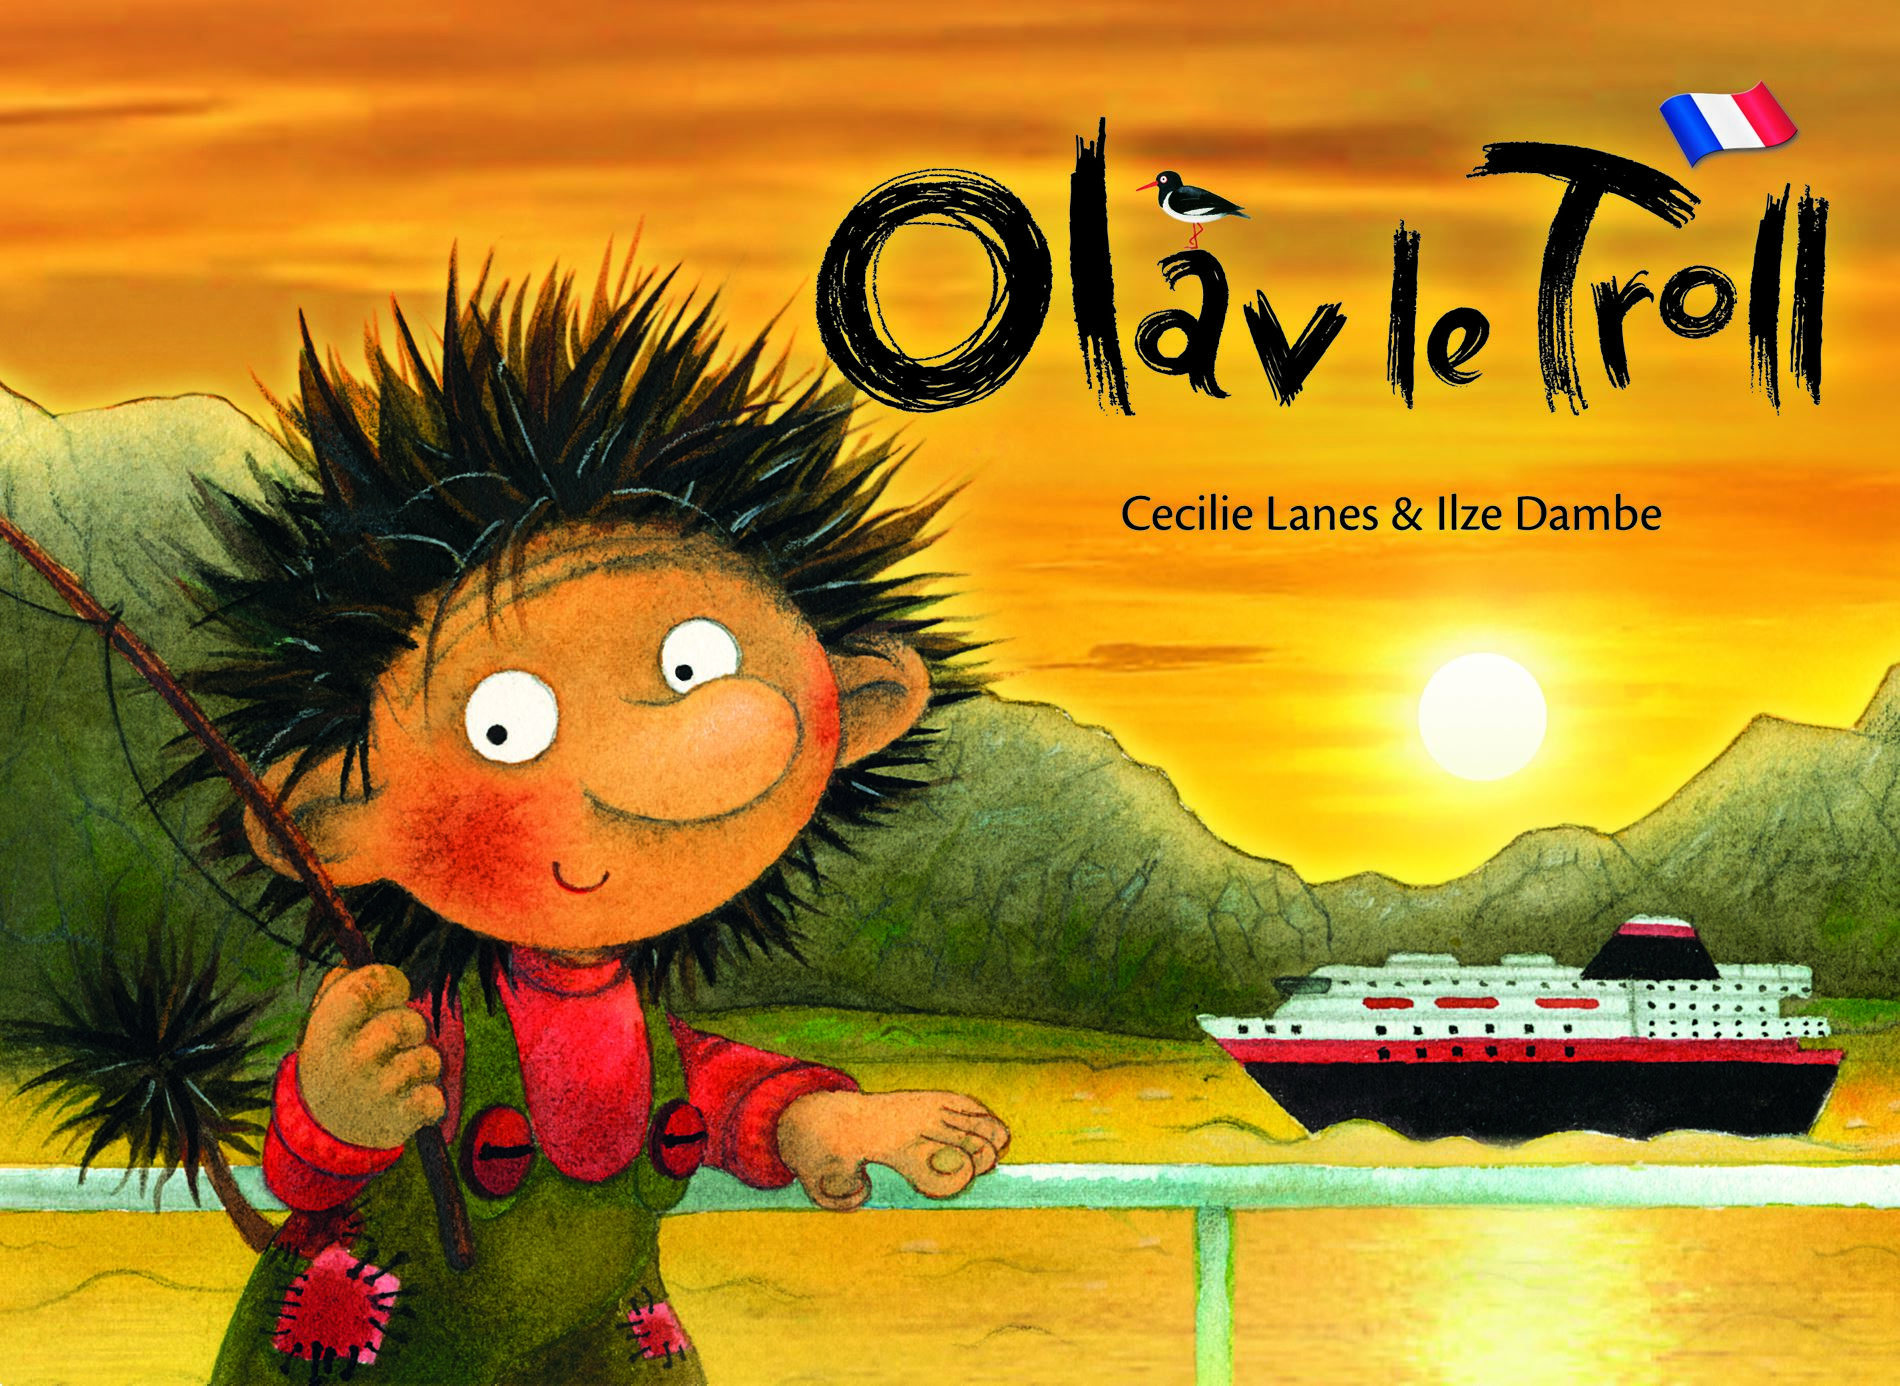 Troll Olav (French version)